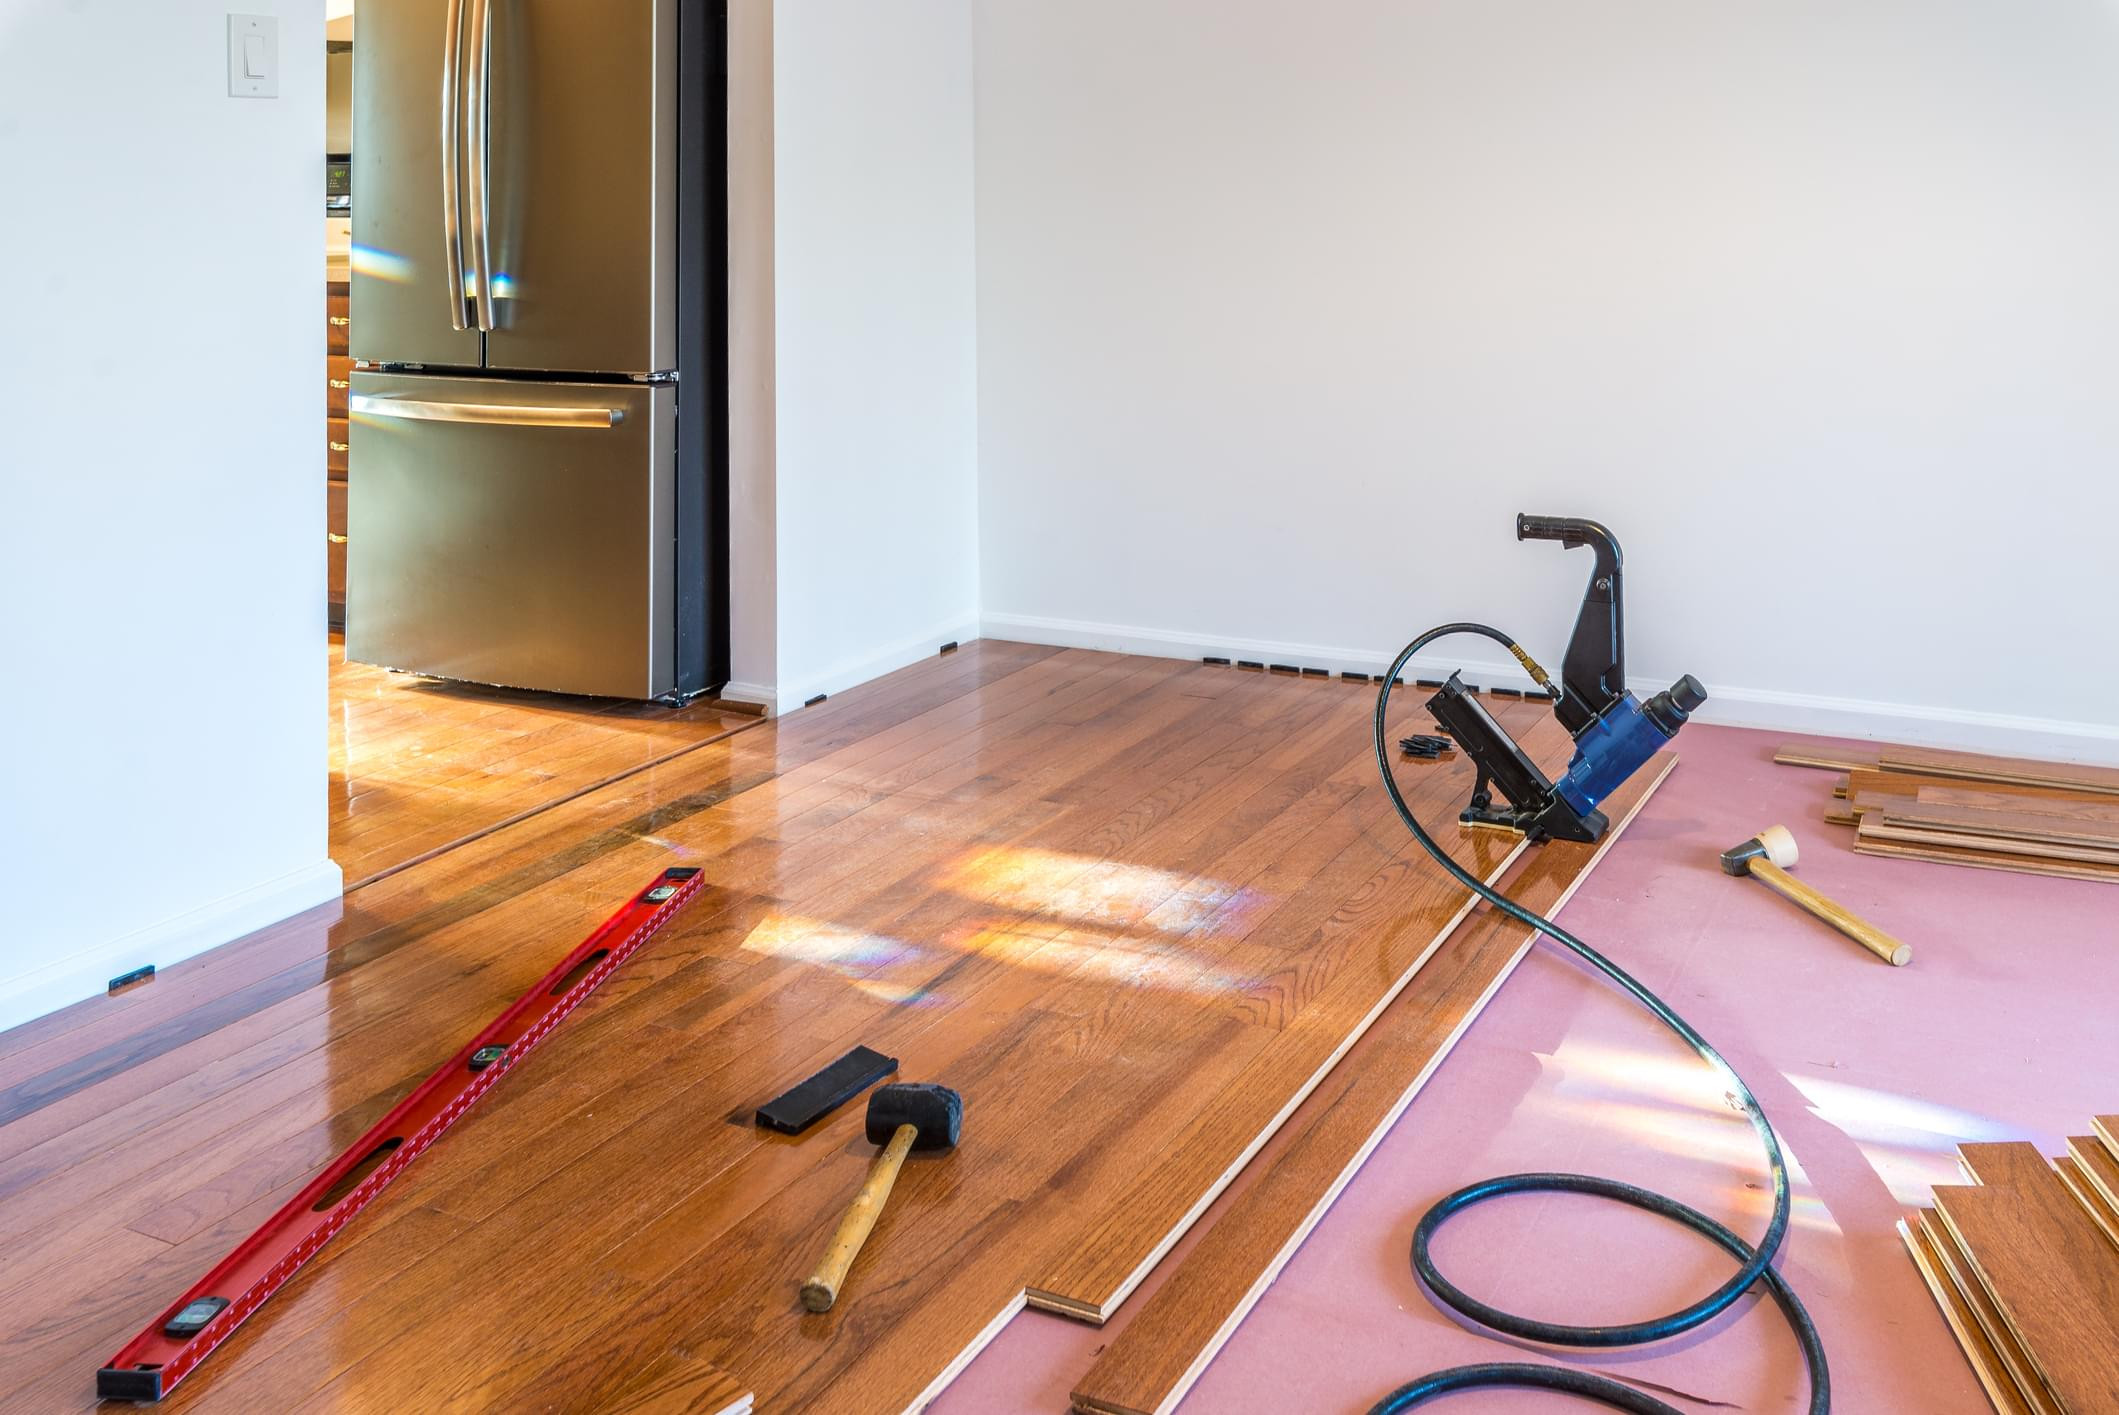 hardwood flooring companies in michigan of downriver carpet flooring regarding hardwood request your free in home estimate no high pressure sales no strings attached